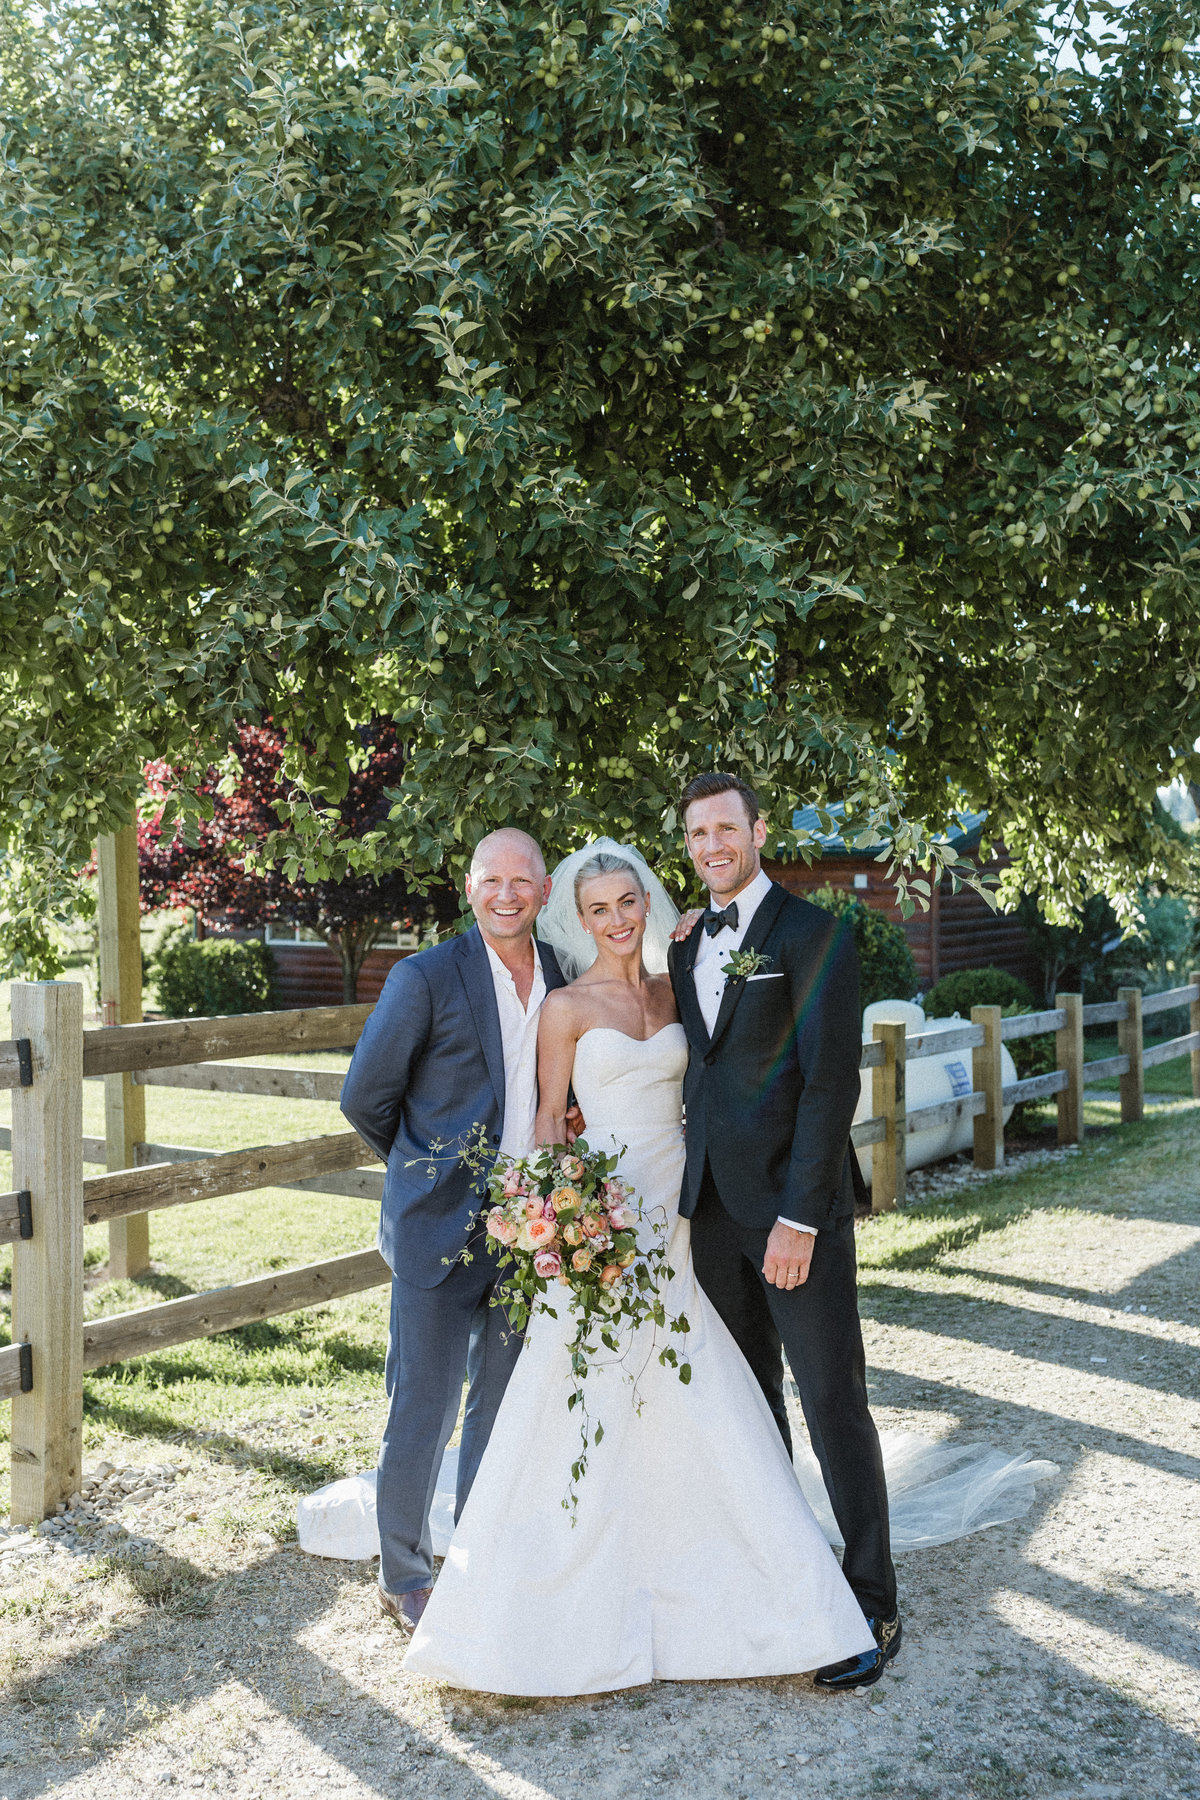 JB Wedding - JULES BROOKS TROY - sarah-falugo-wedding-photographer-julianne-hough-brooks-laich-2885